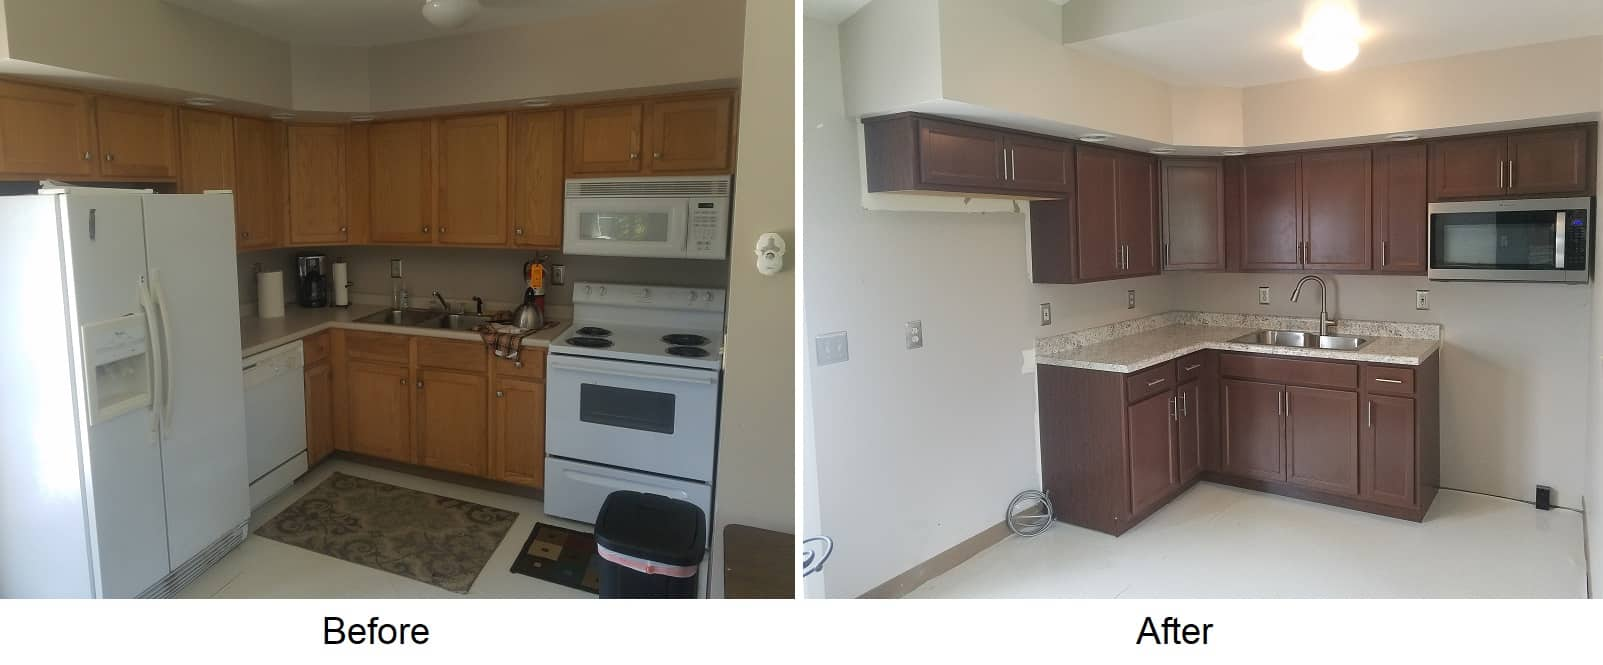 kitchen remodel state college before after